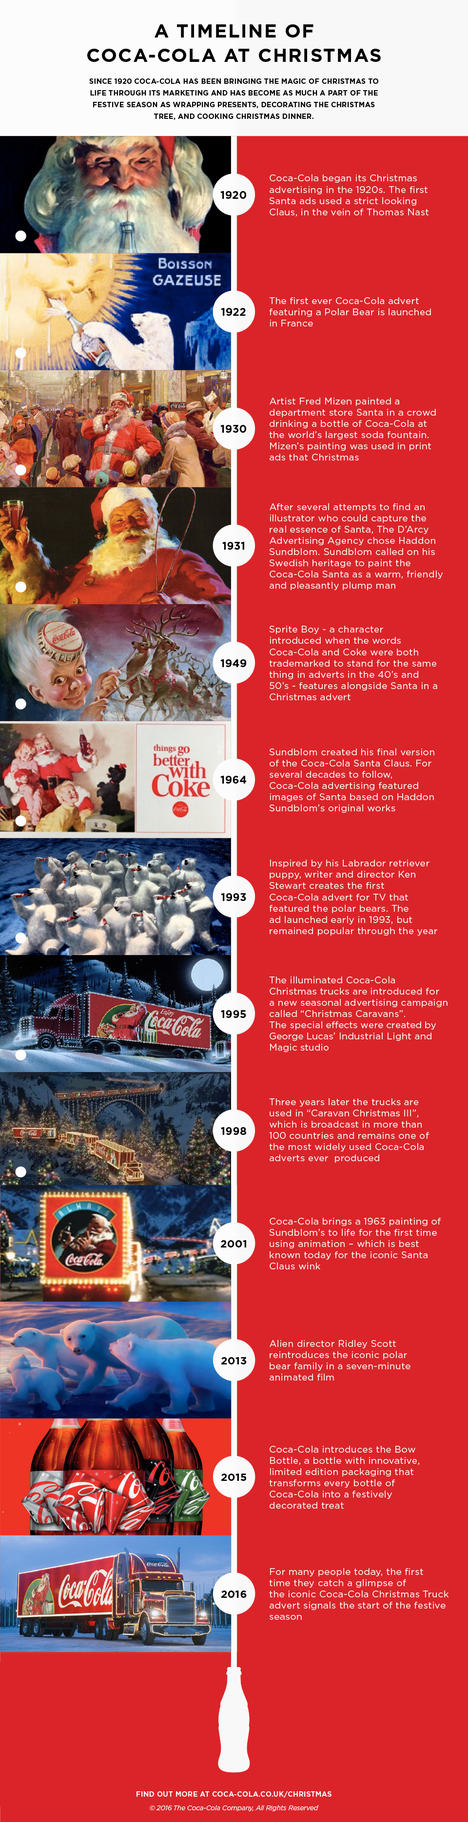 A Timeline of Coca-Cola at Christmas